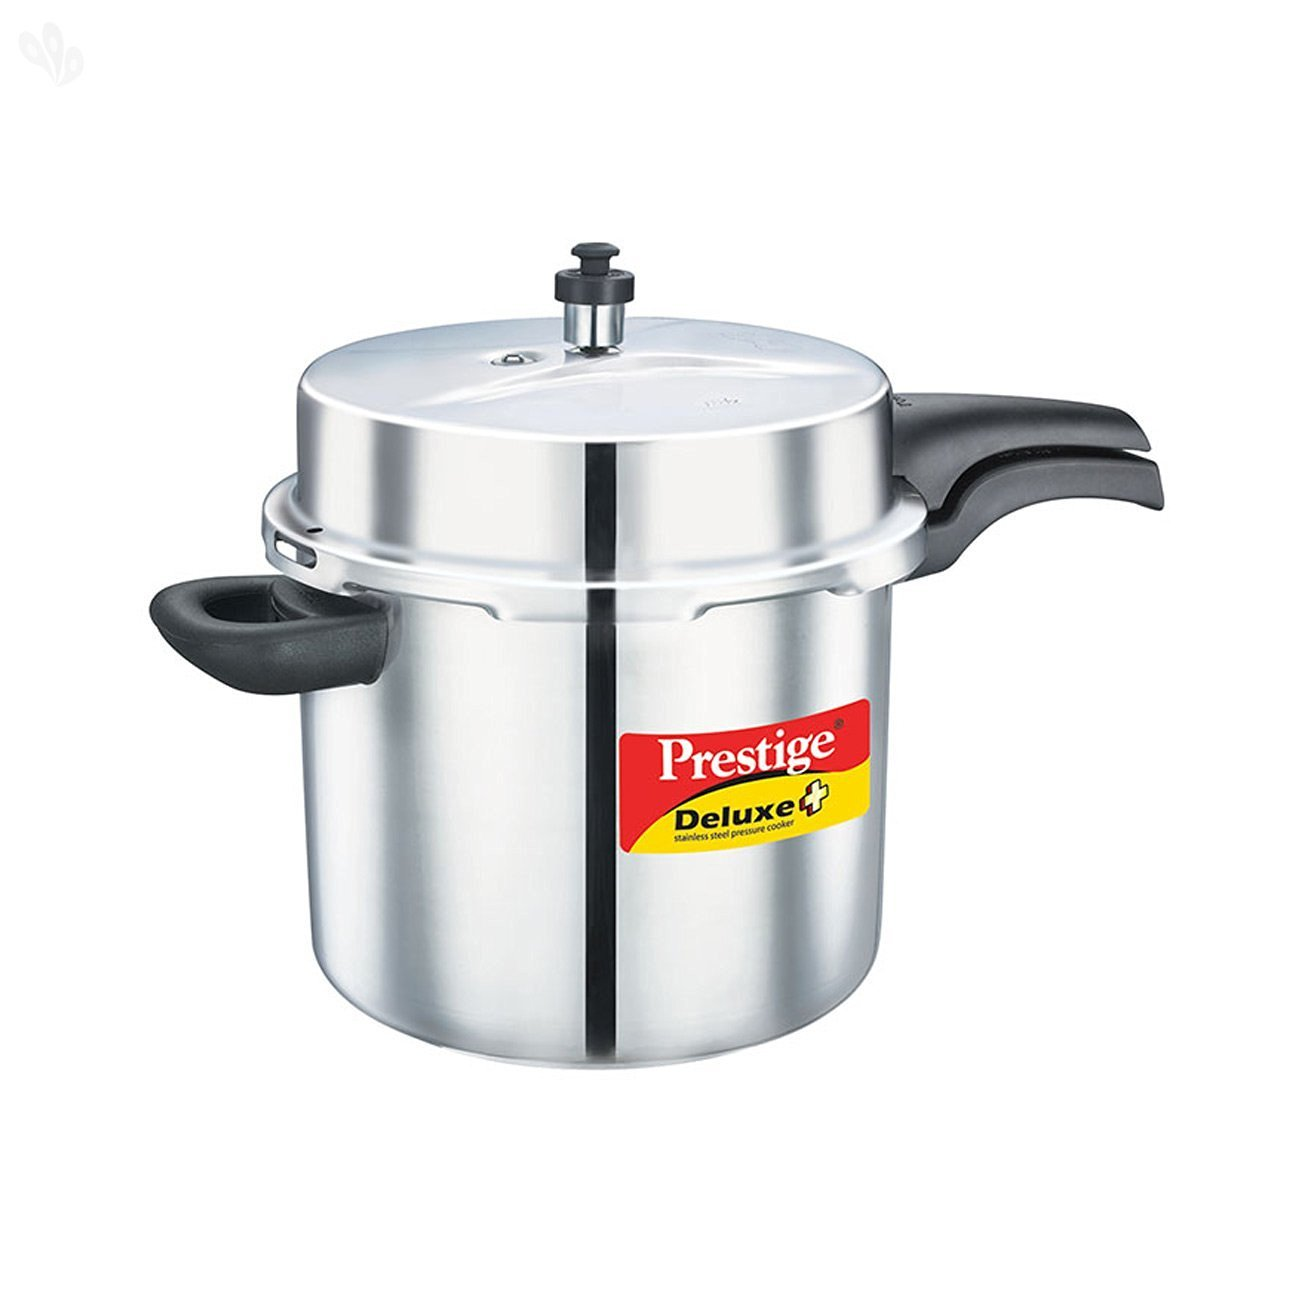 Prestige 10-Liter Deluxe Alpha Induction Base Stainless Steel Pressure Cooker